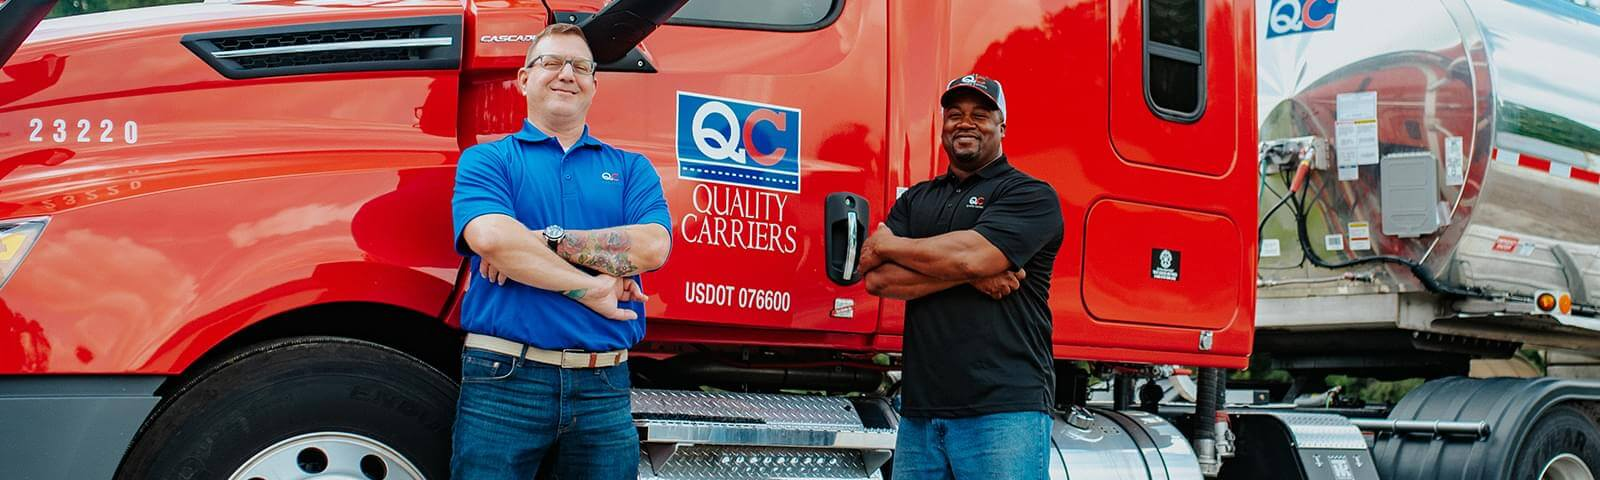 Two employees standing in front of a Truck